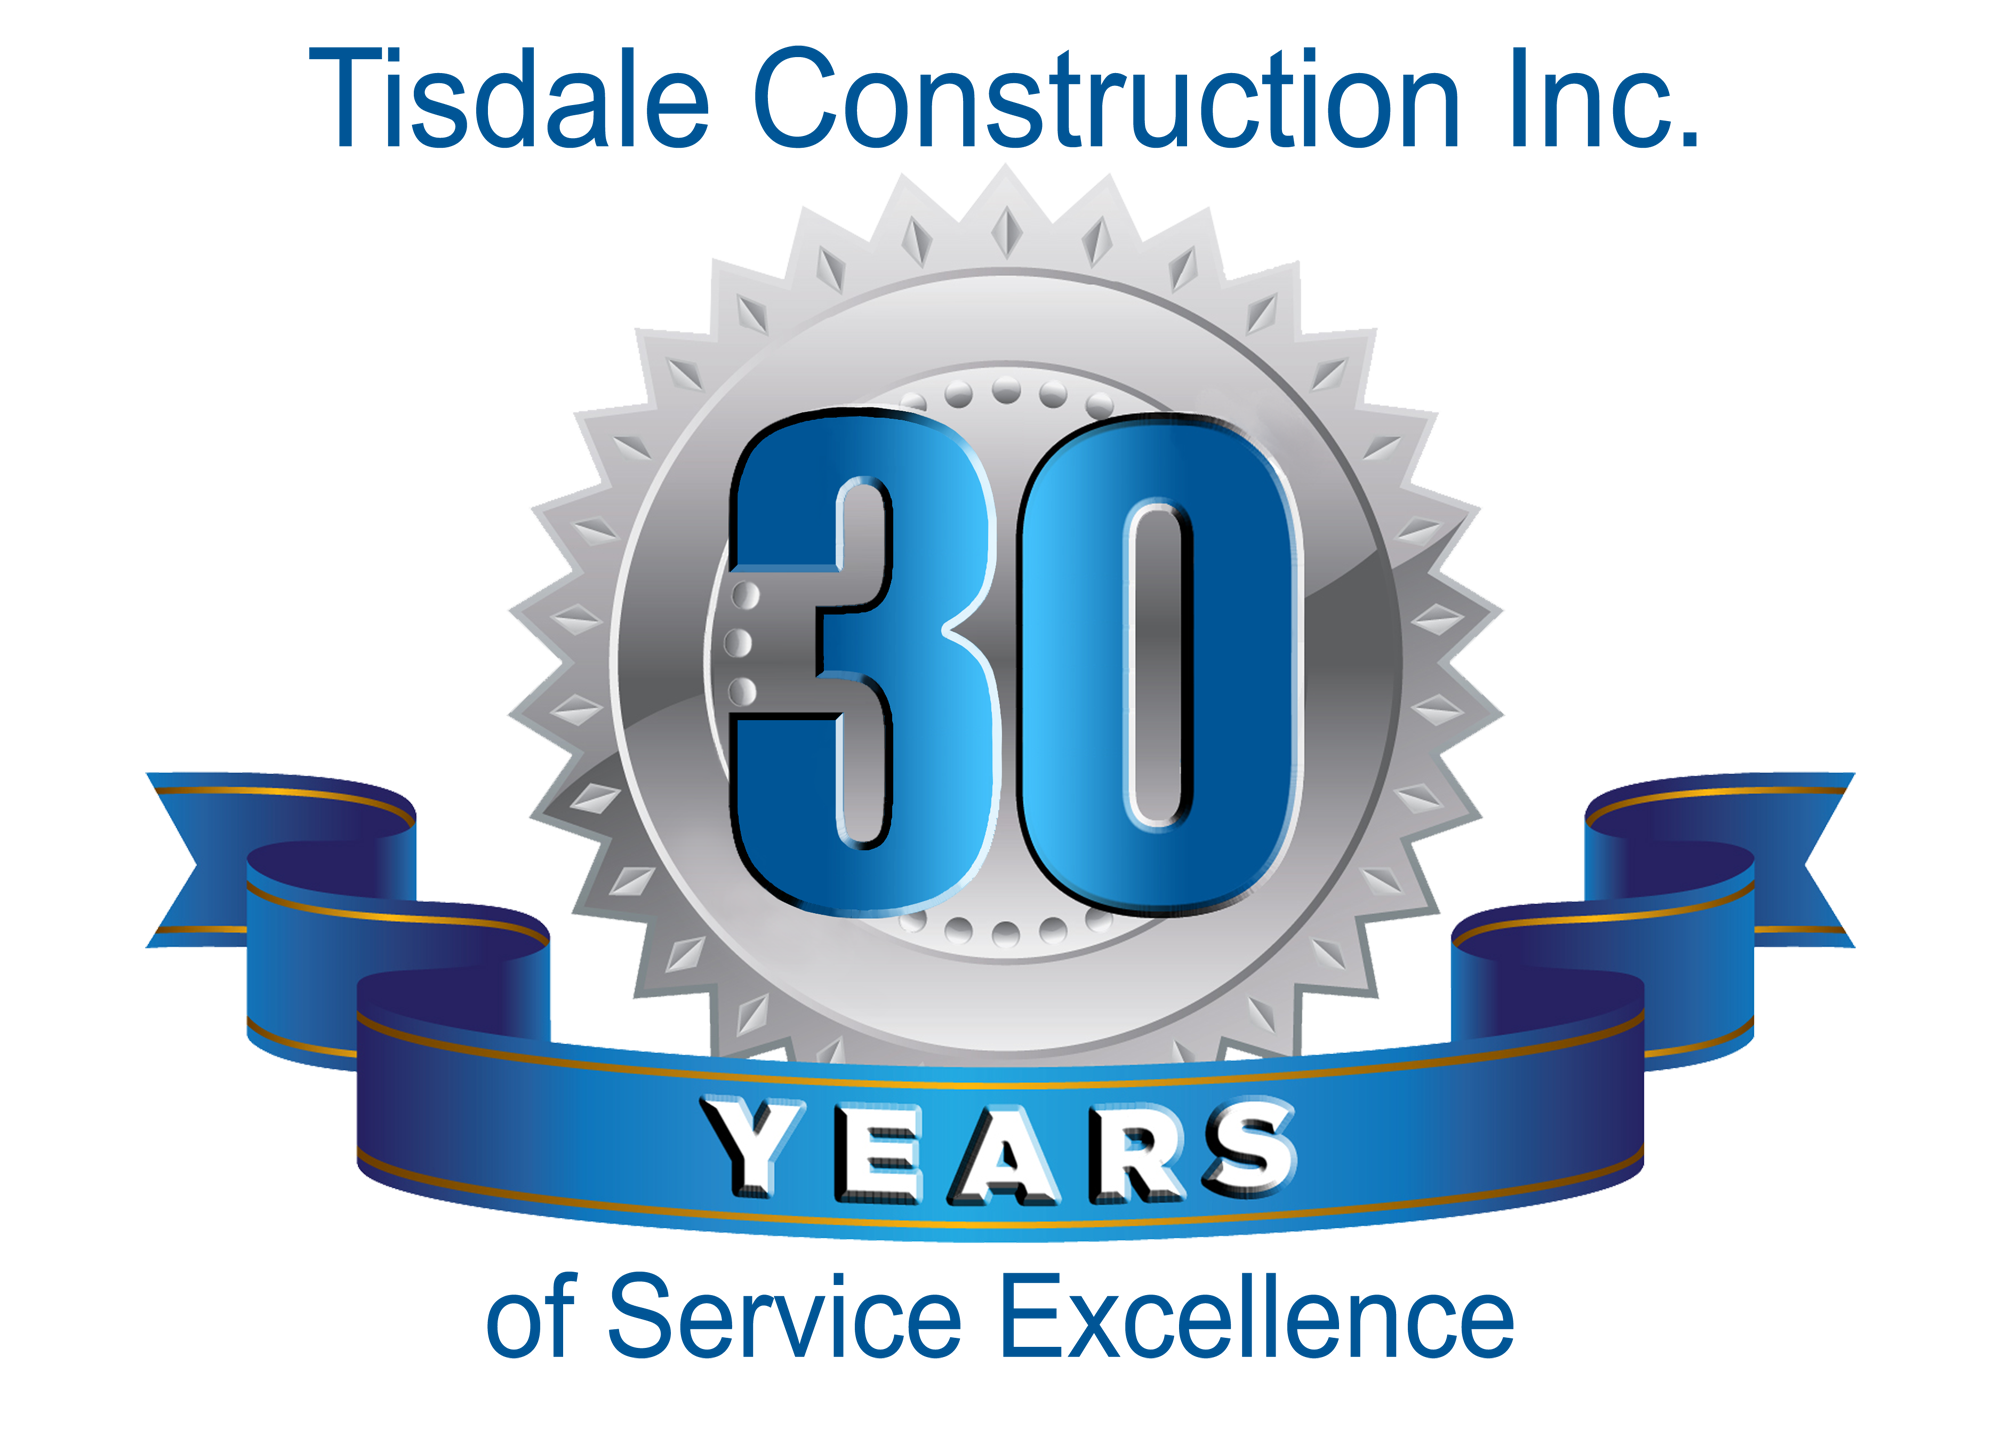 Disaster clipart service excellence First Construction Recovery time Disaster